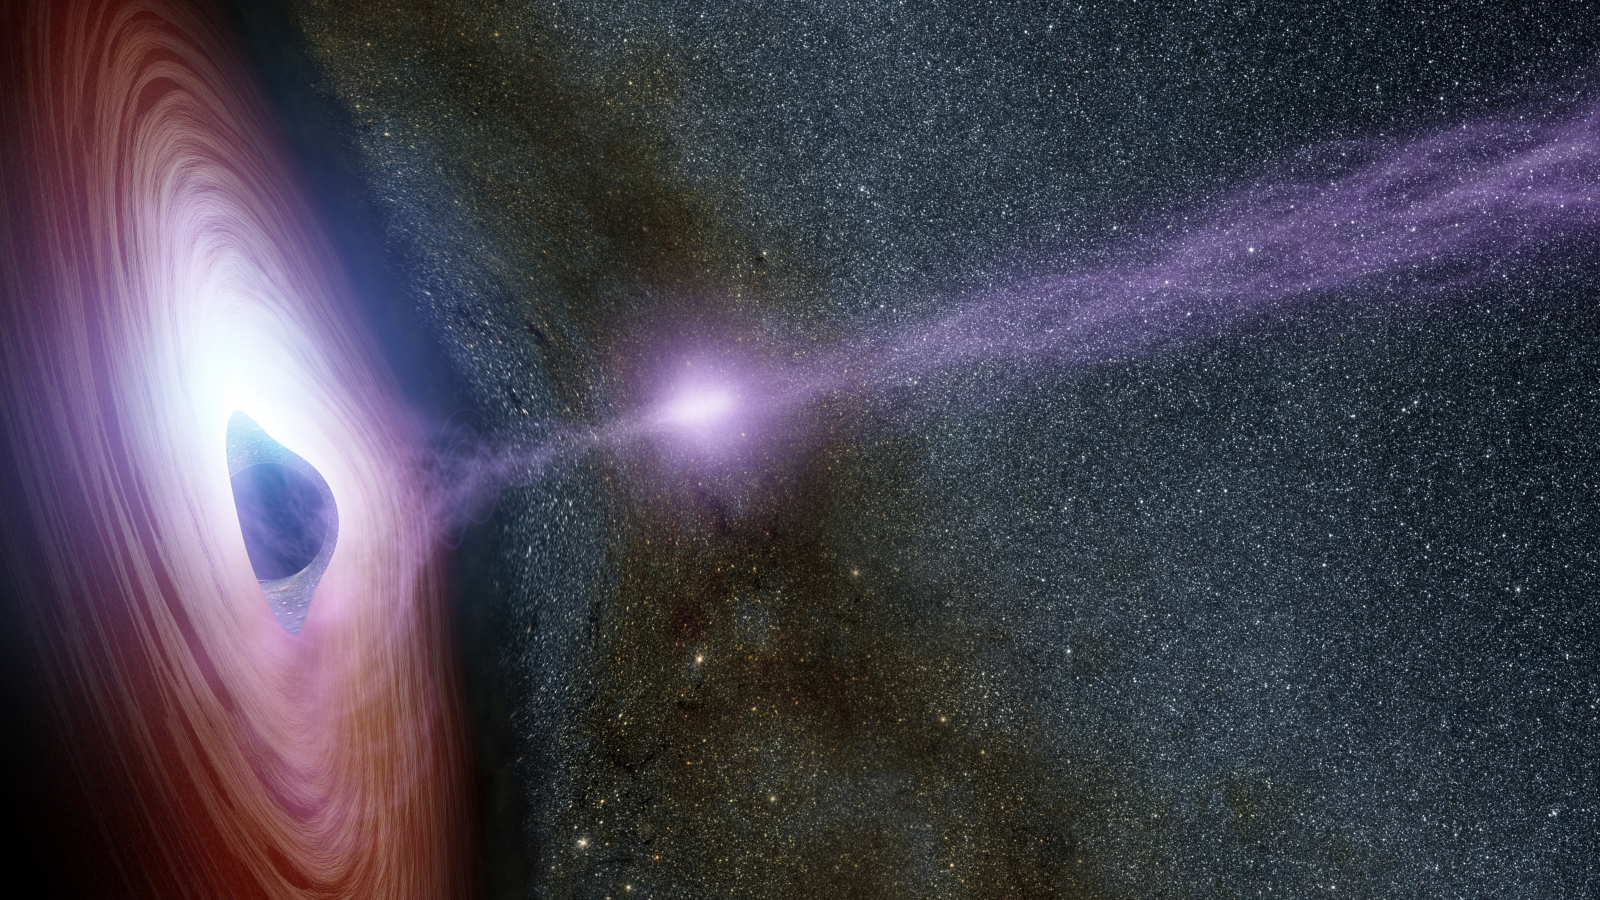 We may get the first-ever image of a black hole this year